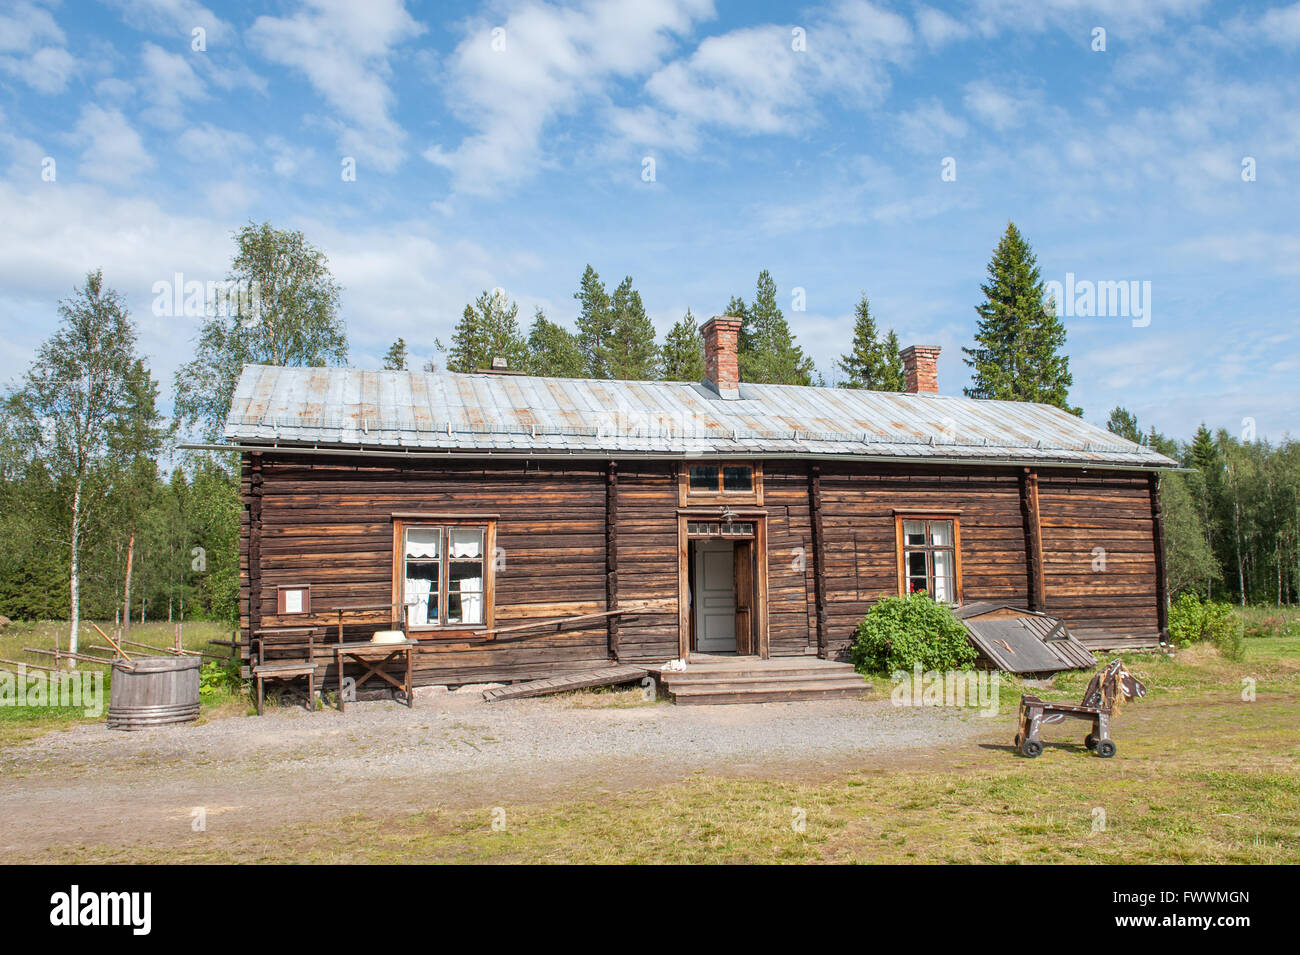 Traditional farm building in northern Sweden - Stock Image